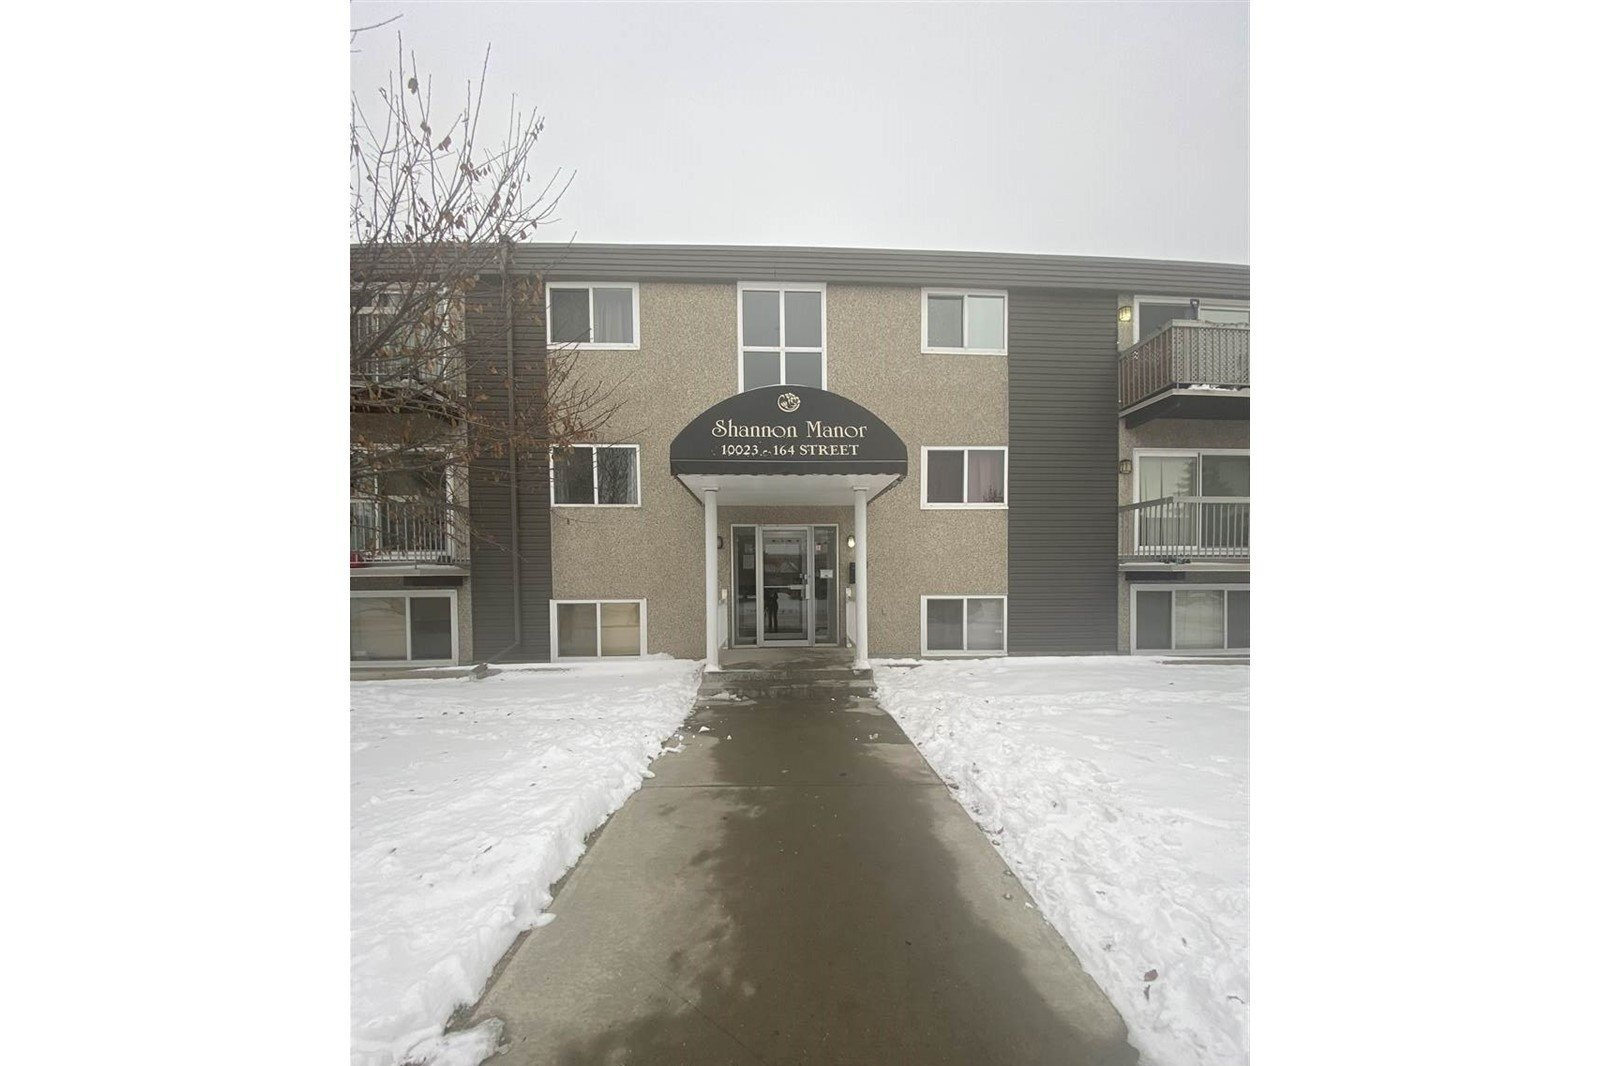 Condo for sale at 10023 164 St NW Unit 106 Edmonton Alberta - MLS: E4221225